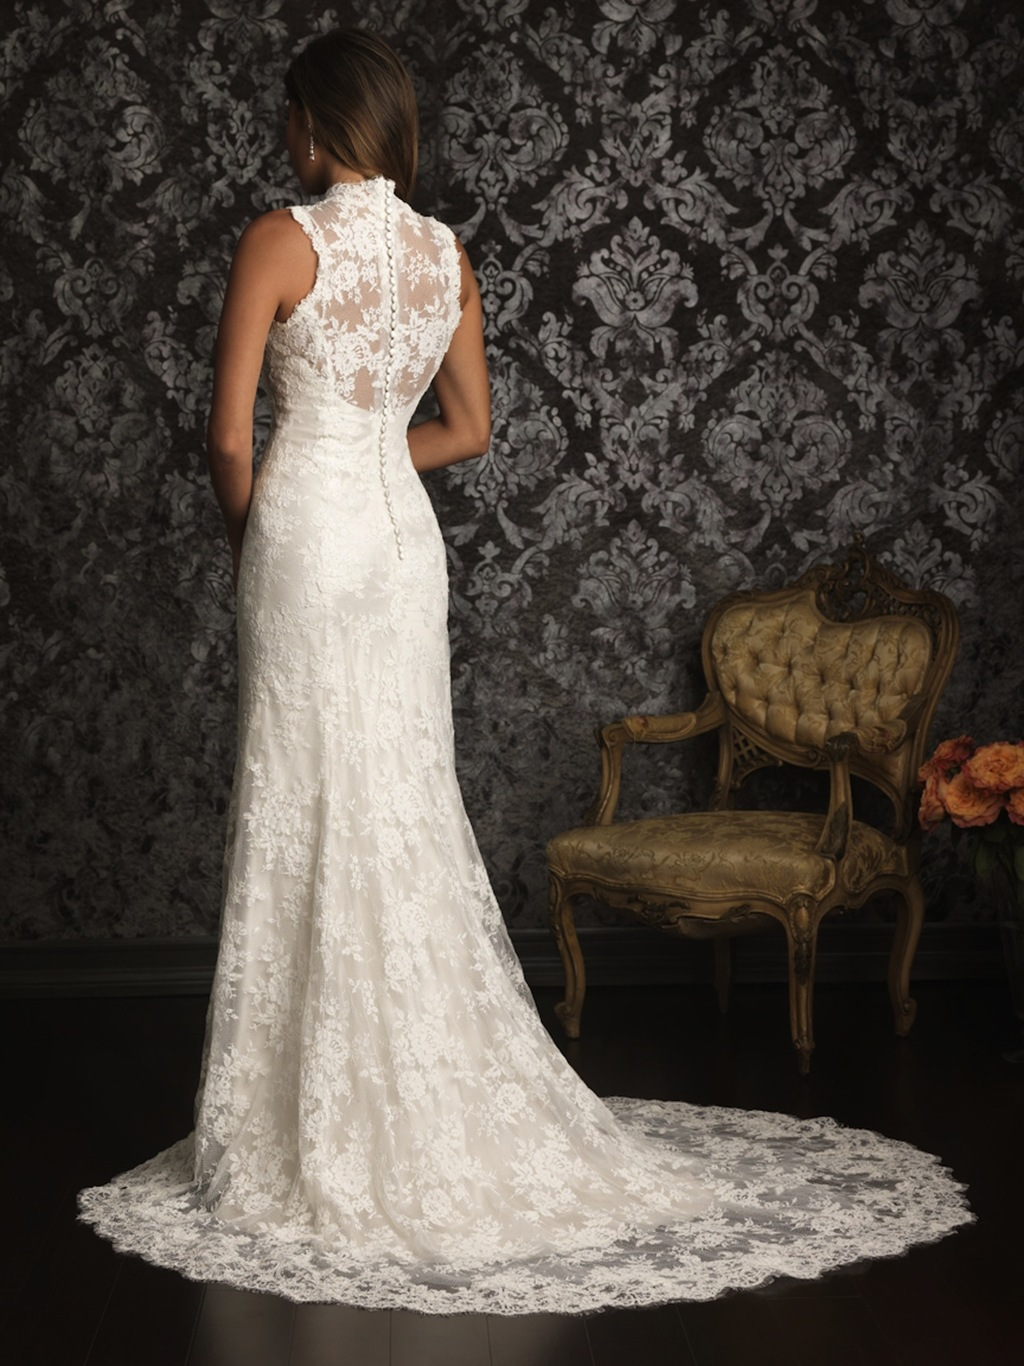 Allure-bridals-wedding-dress-bridal-gown-allure-collection-2013-9019b-2.full